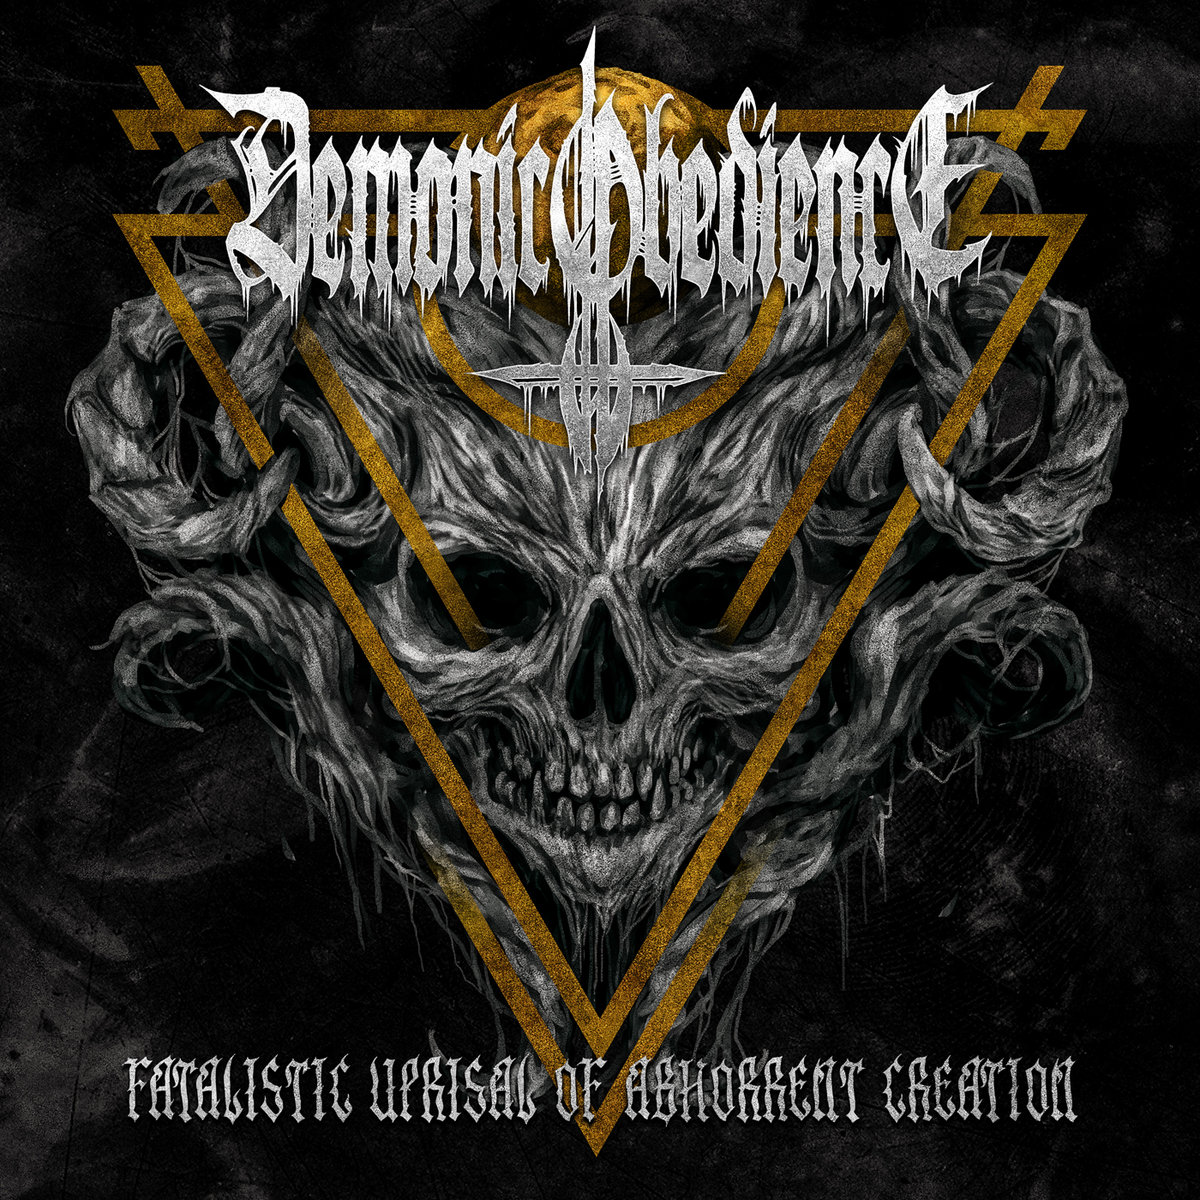 Demonic Obedience - Fatalistic Uprisal Of Abhorrent Creation